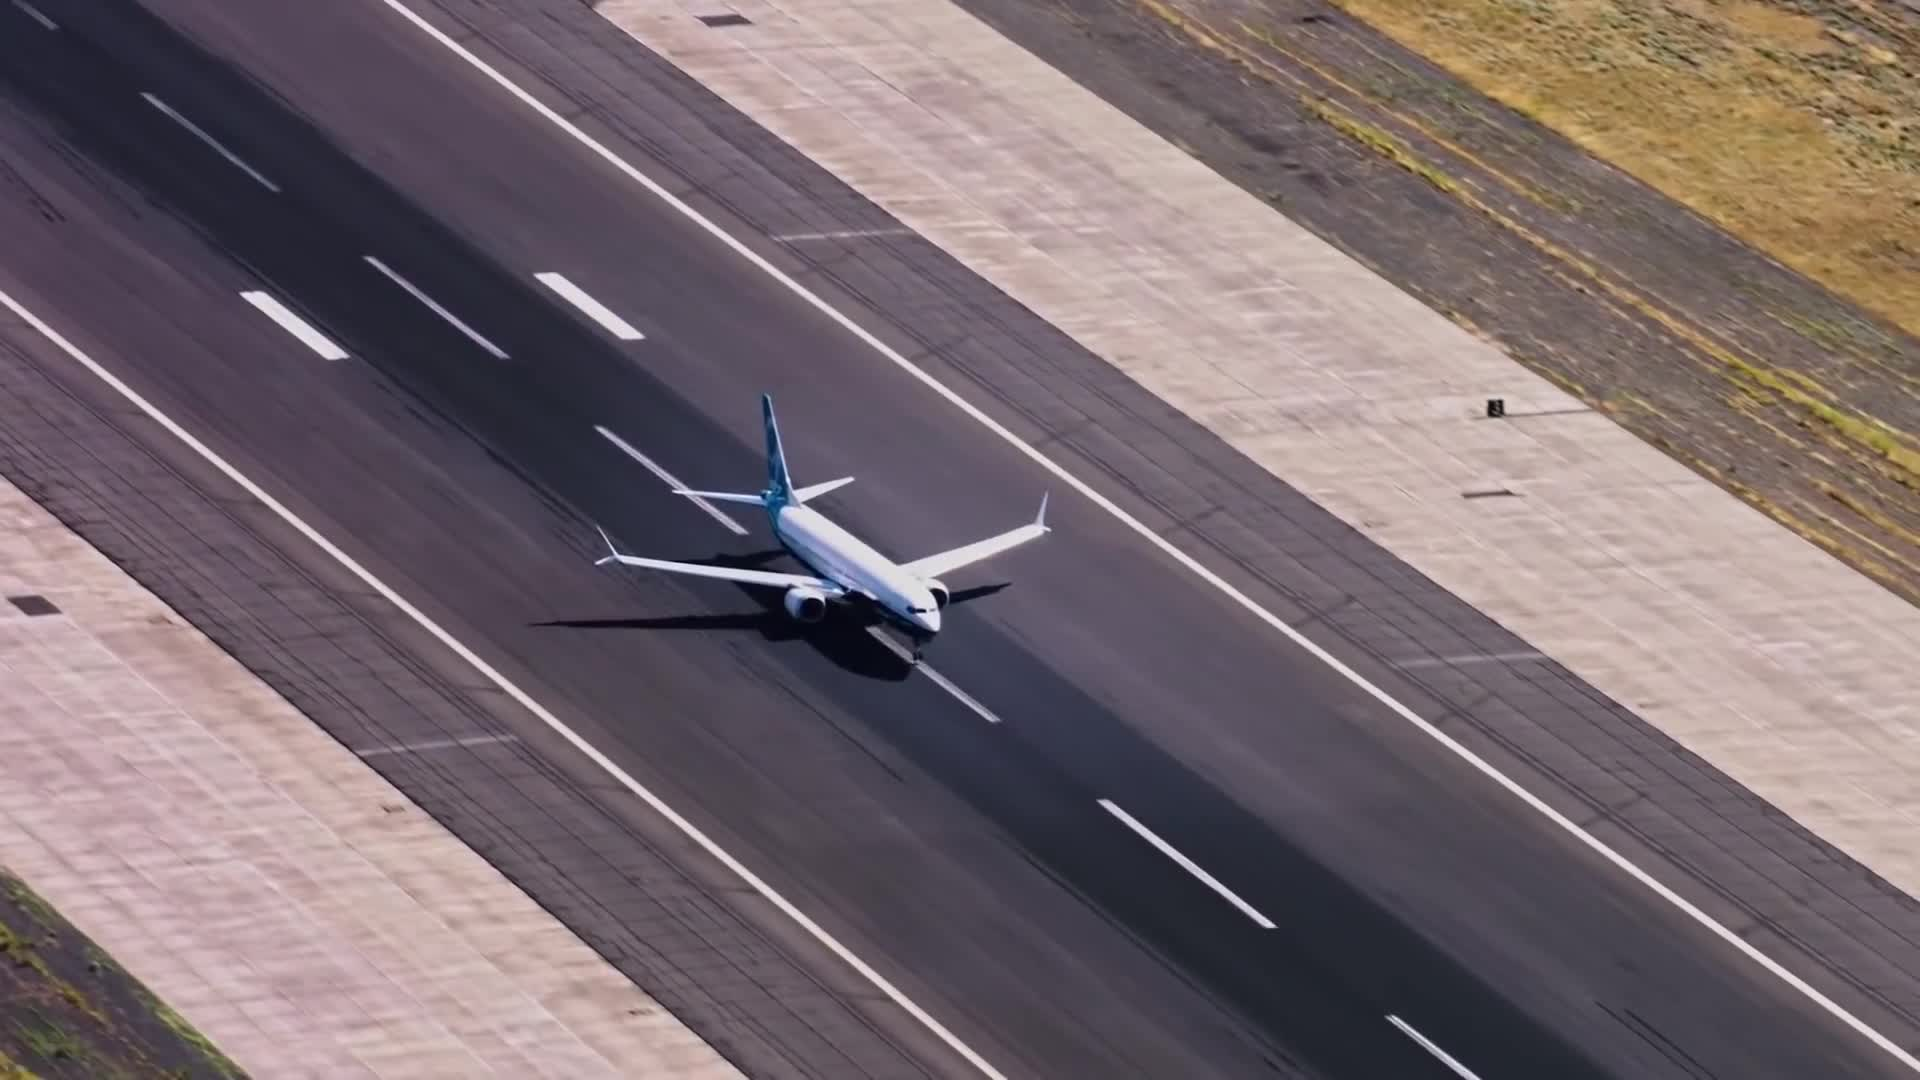 Boeing 727, Boeing 737 max, Flight speed, aircraft speed, airliner, aviation, jet engine, supersonic, turbofan, why do we fly so slowly, 737 MAX follows 787 dreamliner , vertical takeoff GIFs